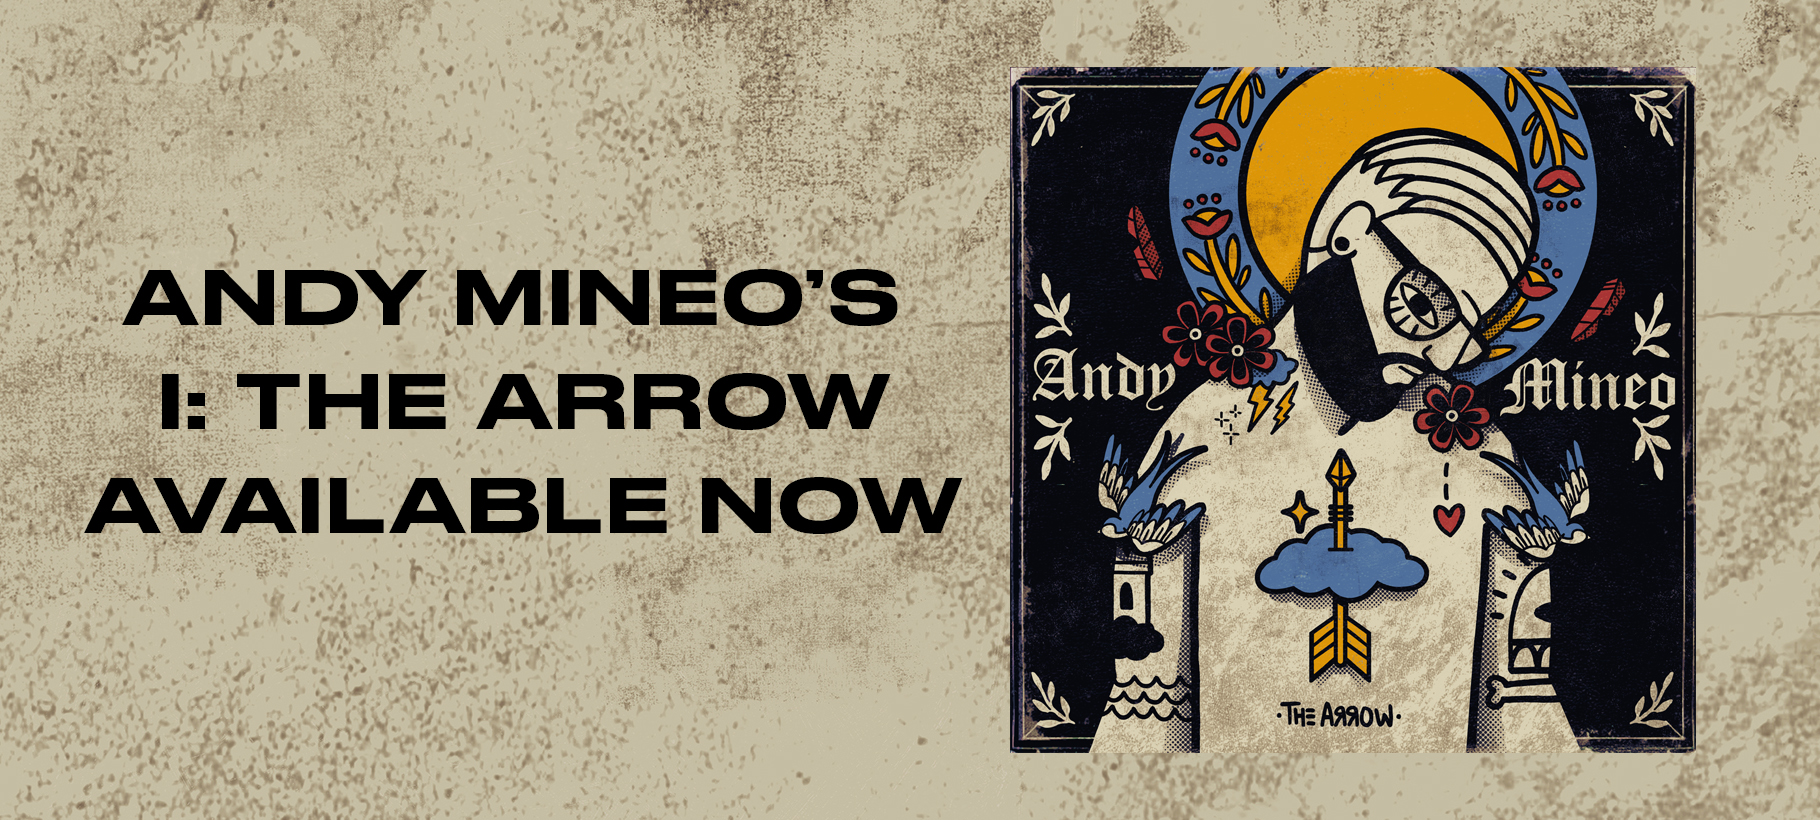 Andy Mineo  x  I : The Arrow